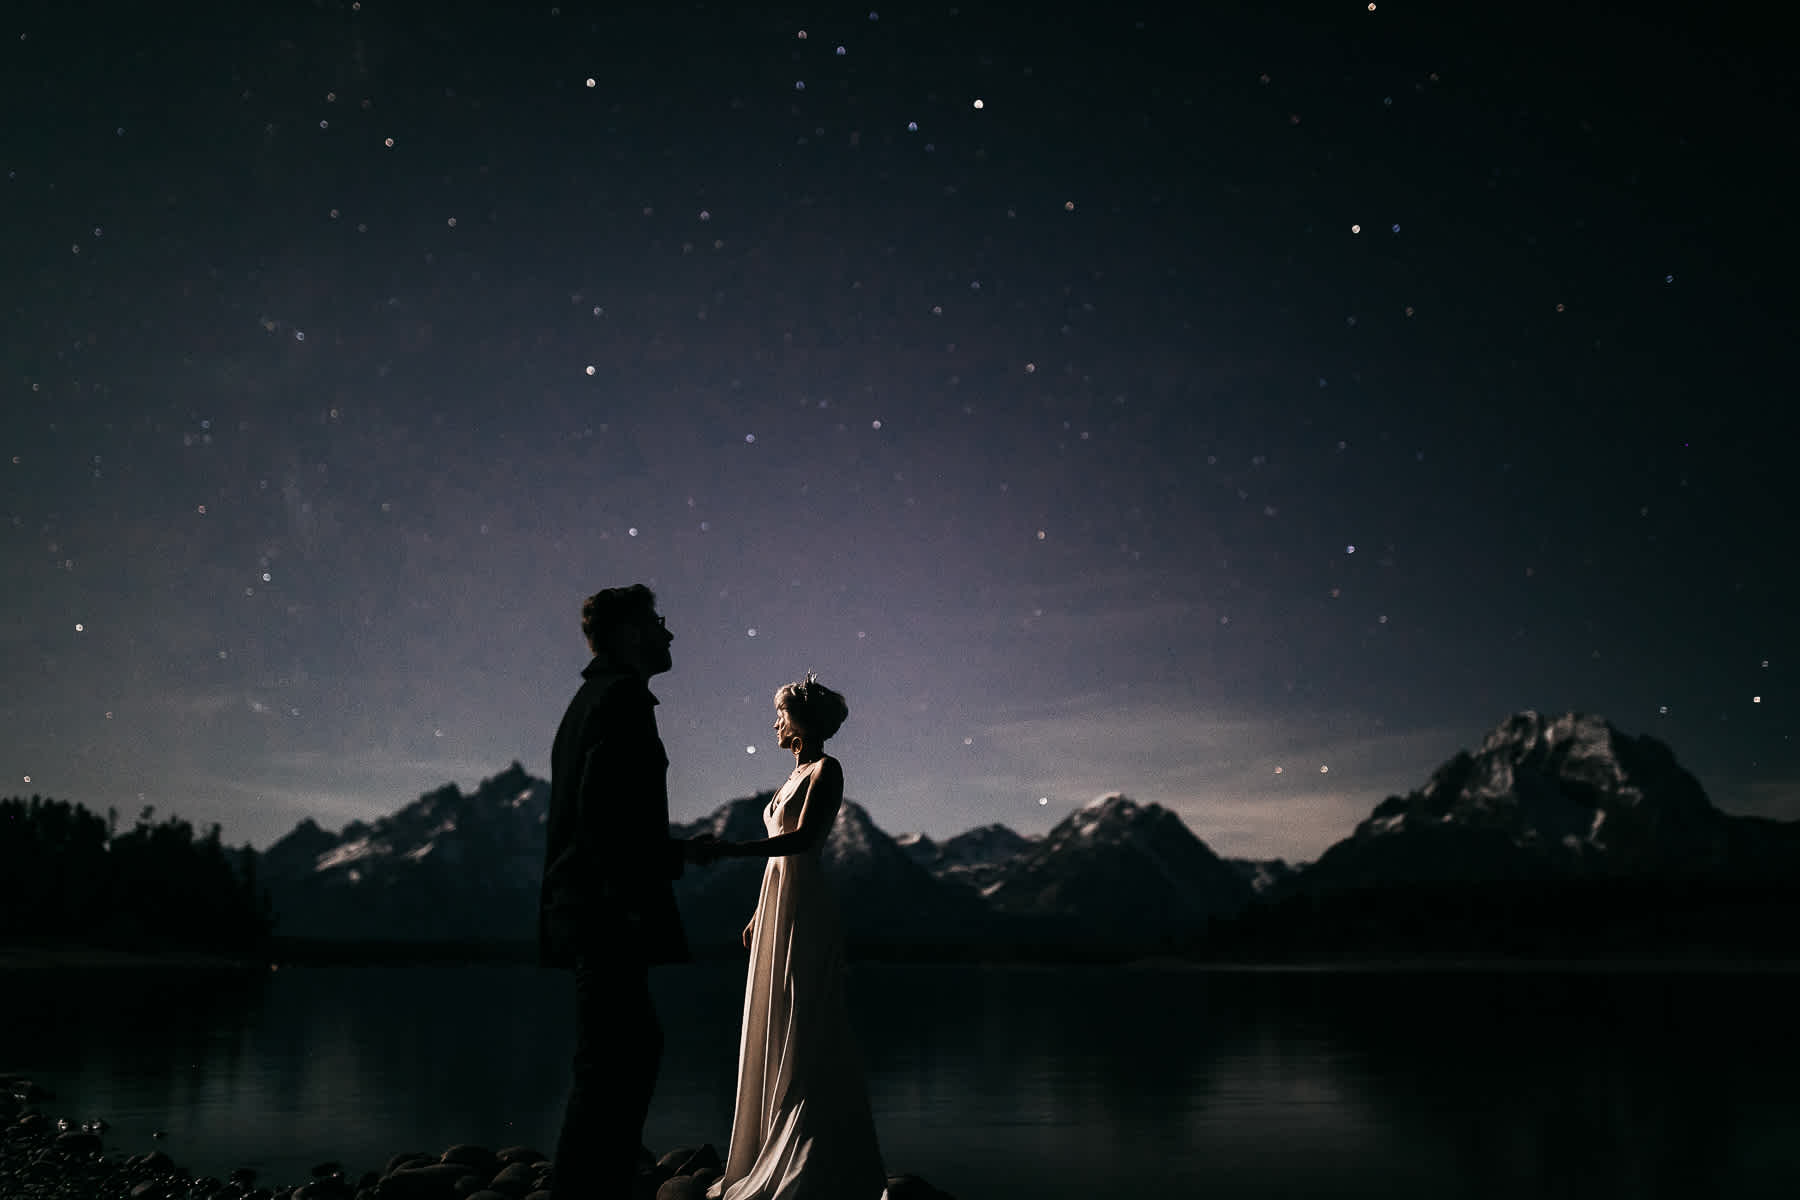 grand-teton-national-park-wyoming-elopement-83